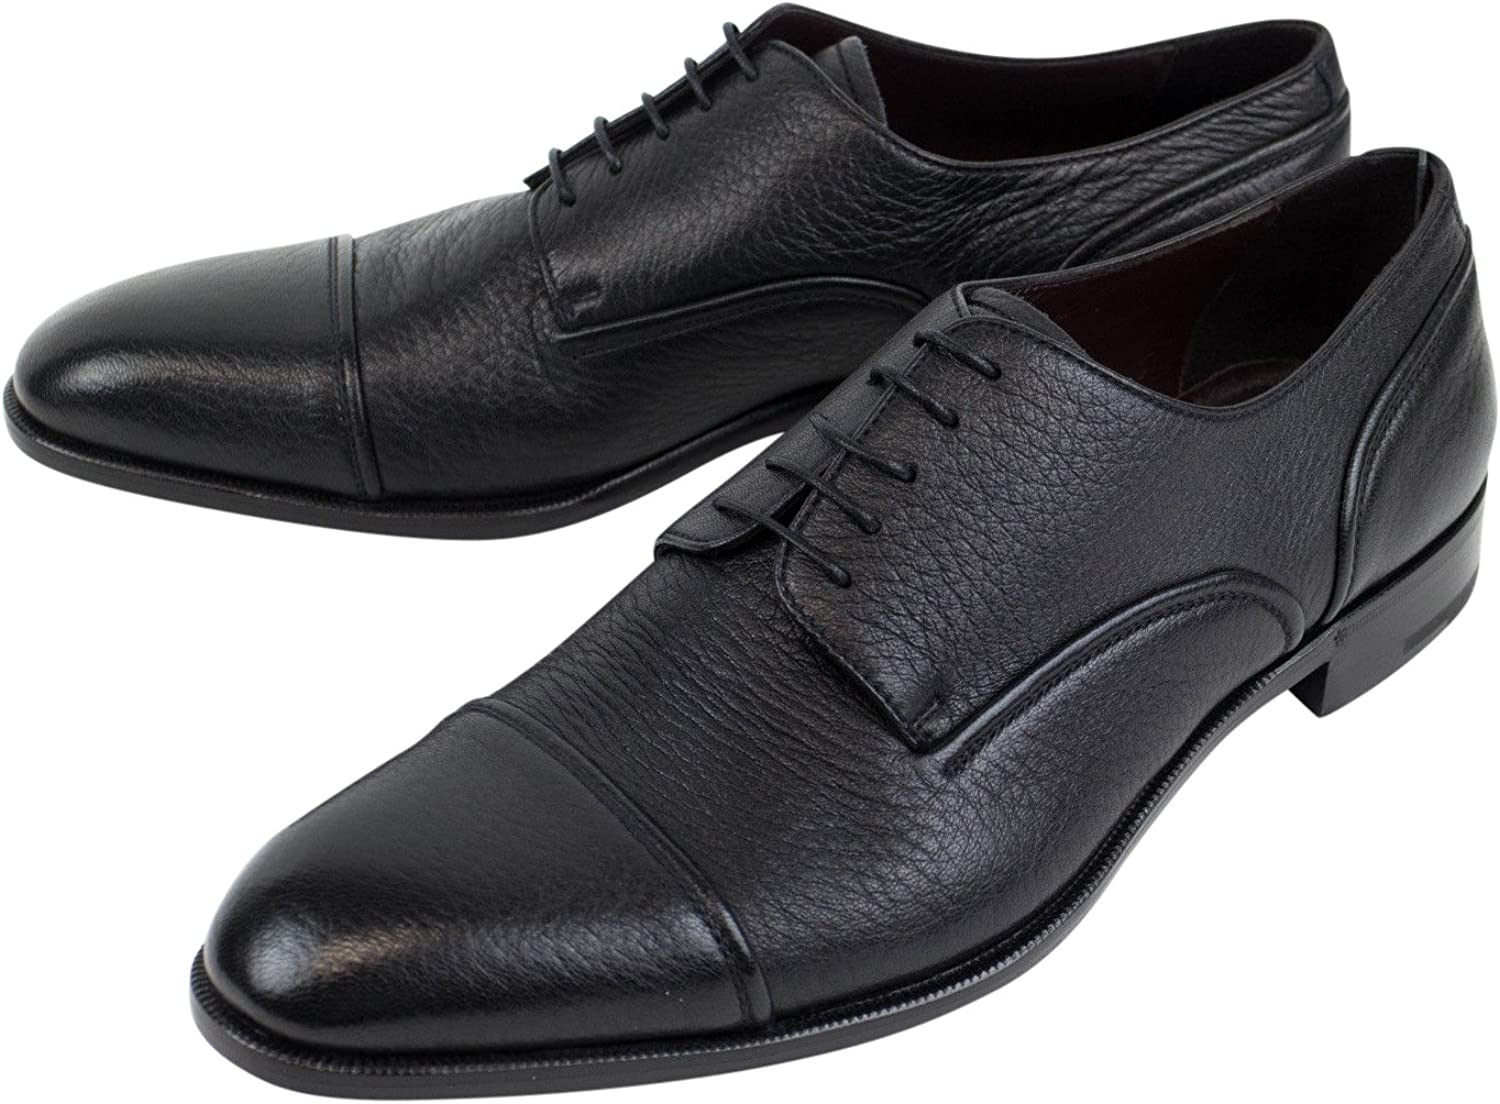 Ermenegildo Zegna 'Avenue Flex' Leather Derby Dress shoes Size 13 US 12 EU D